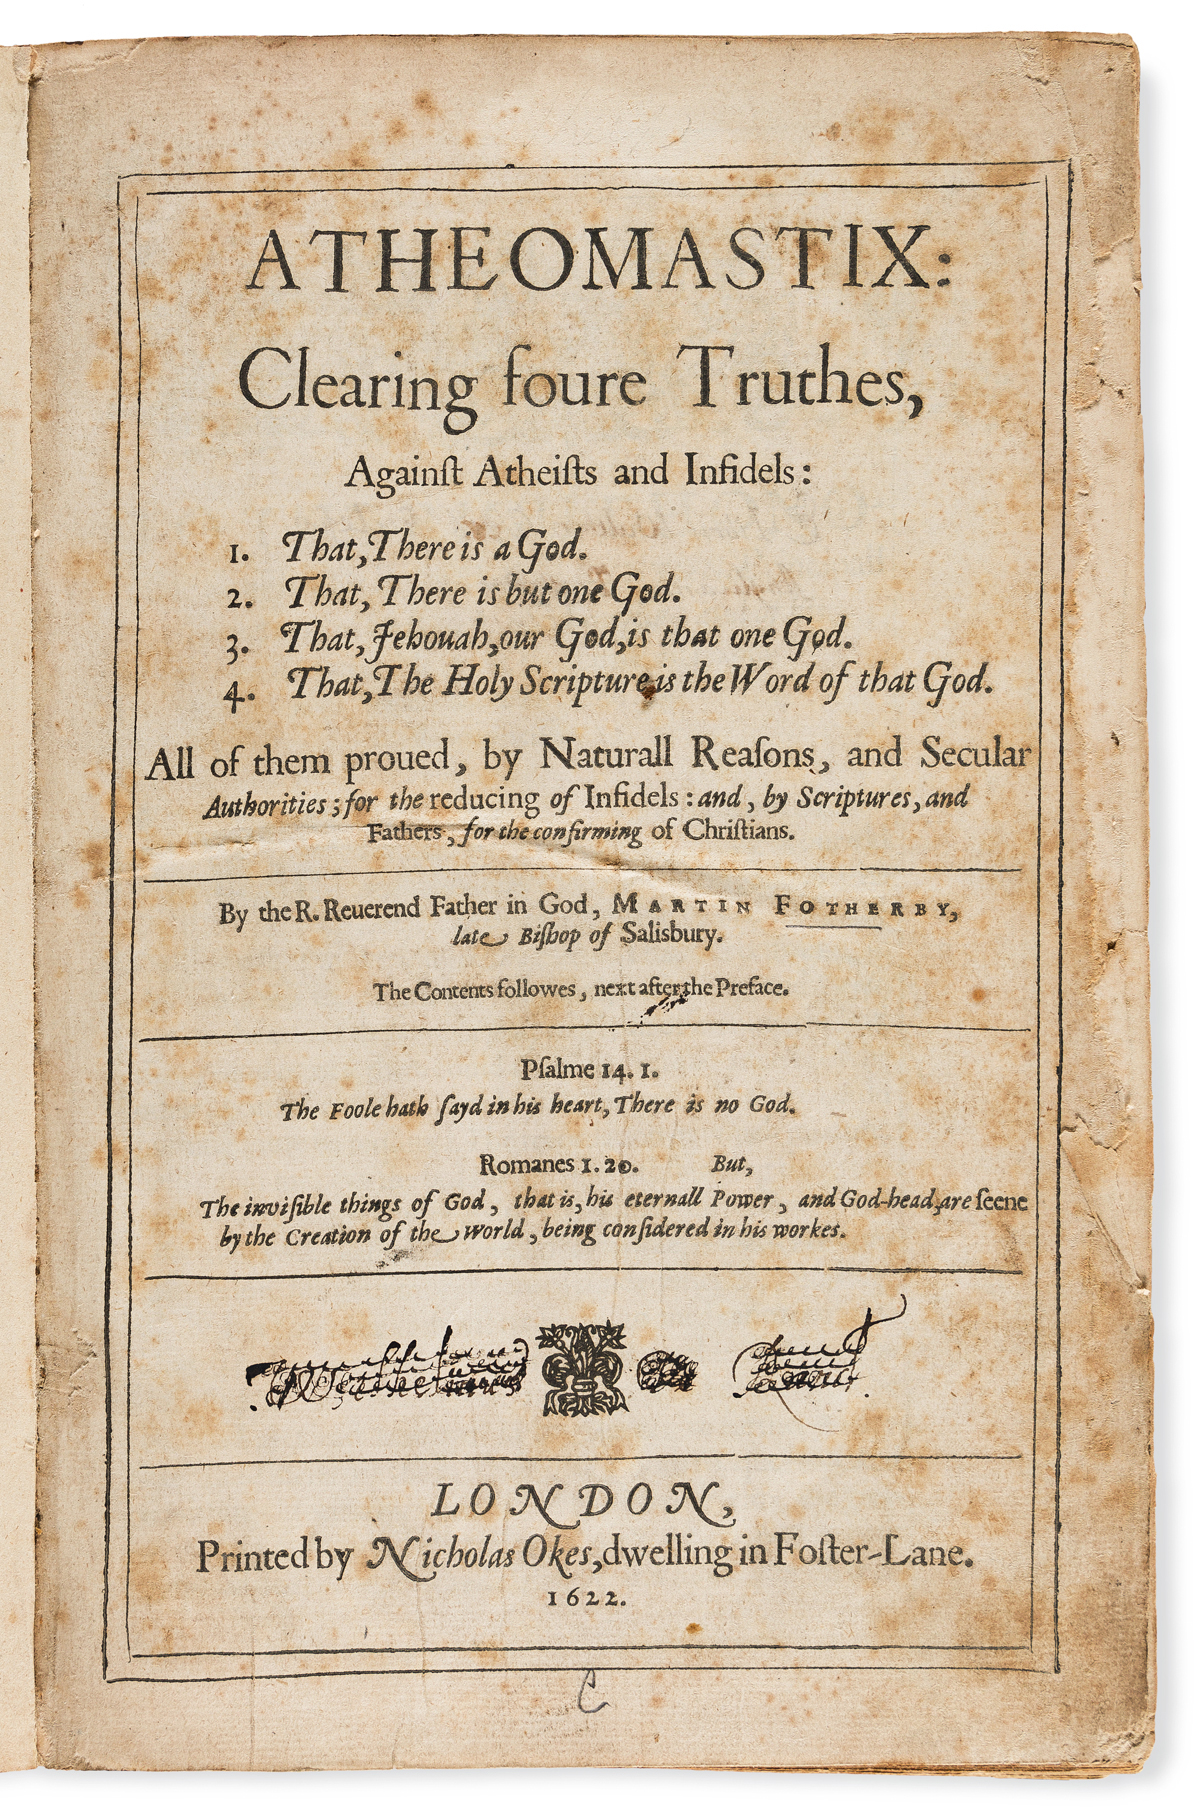 Fotherby, Martin (1549/1550-1620) Atheomastix: Clearing Foure Truthes, against Atheists and Infidels.